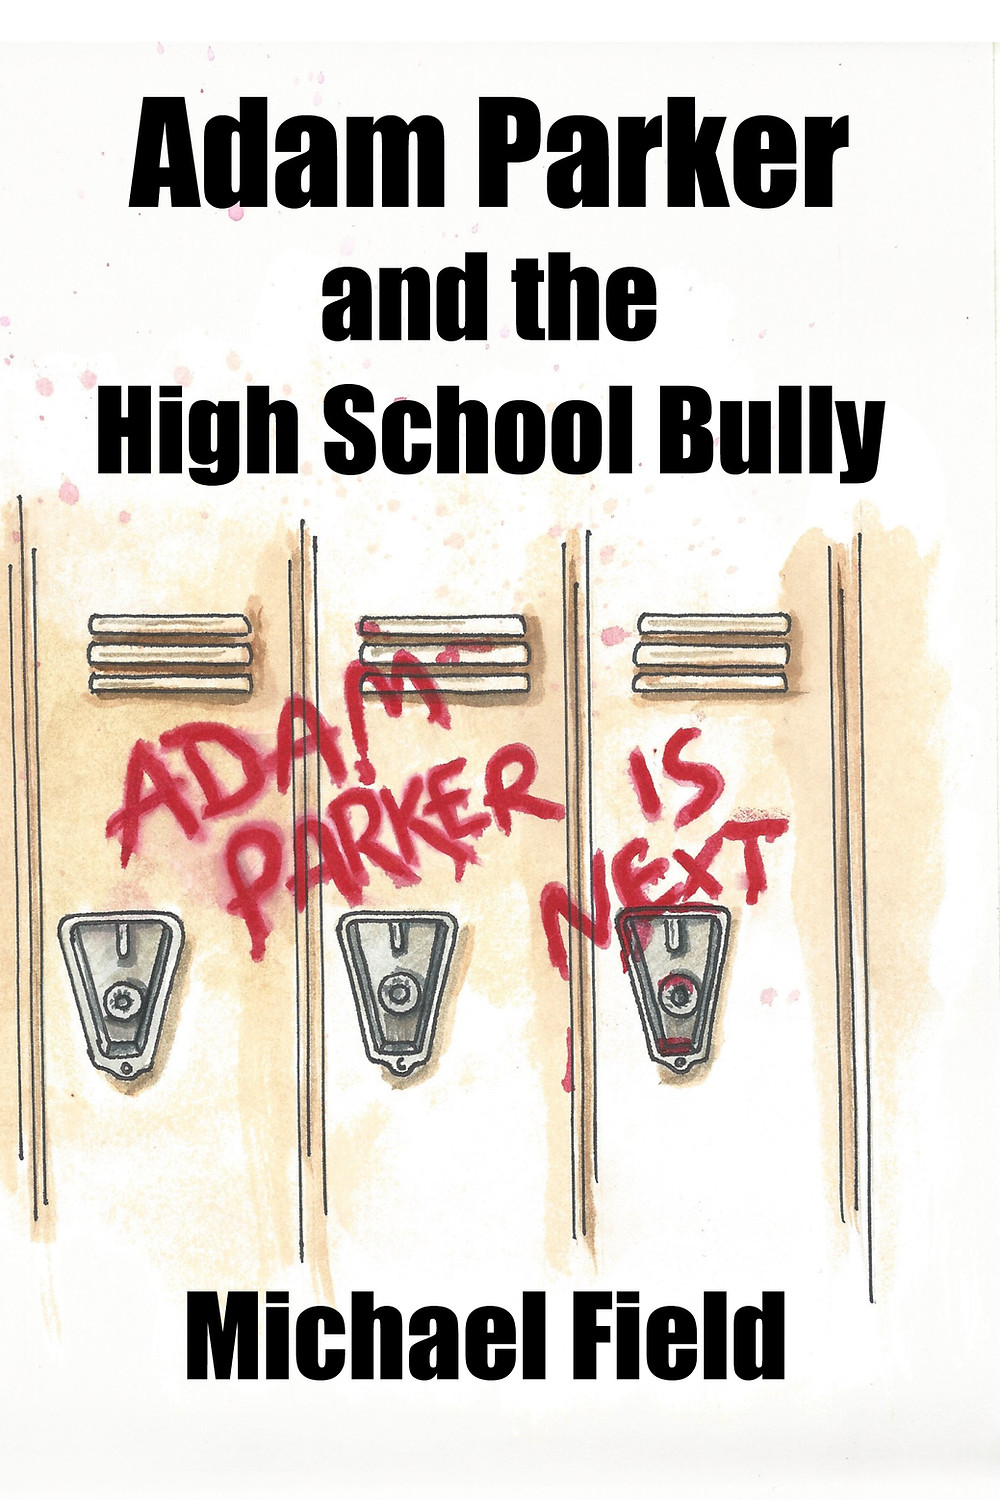 Adam Parker and the High School Bully book cover